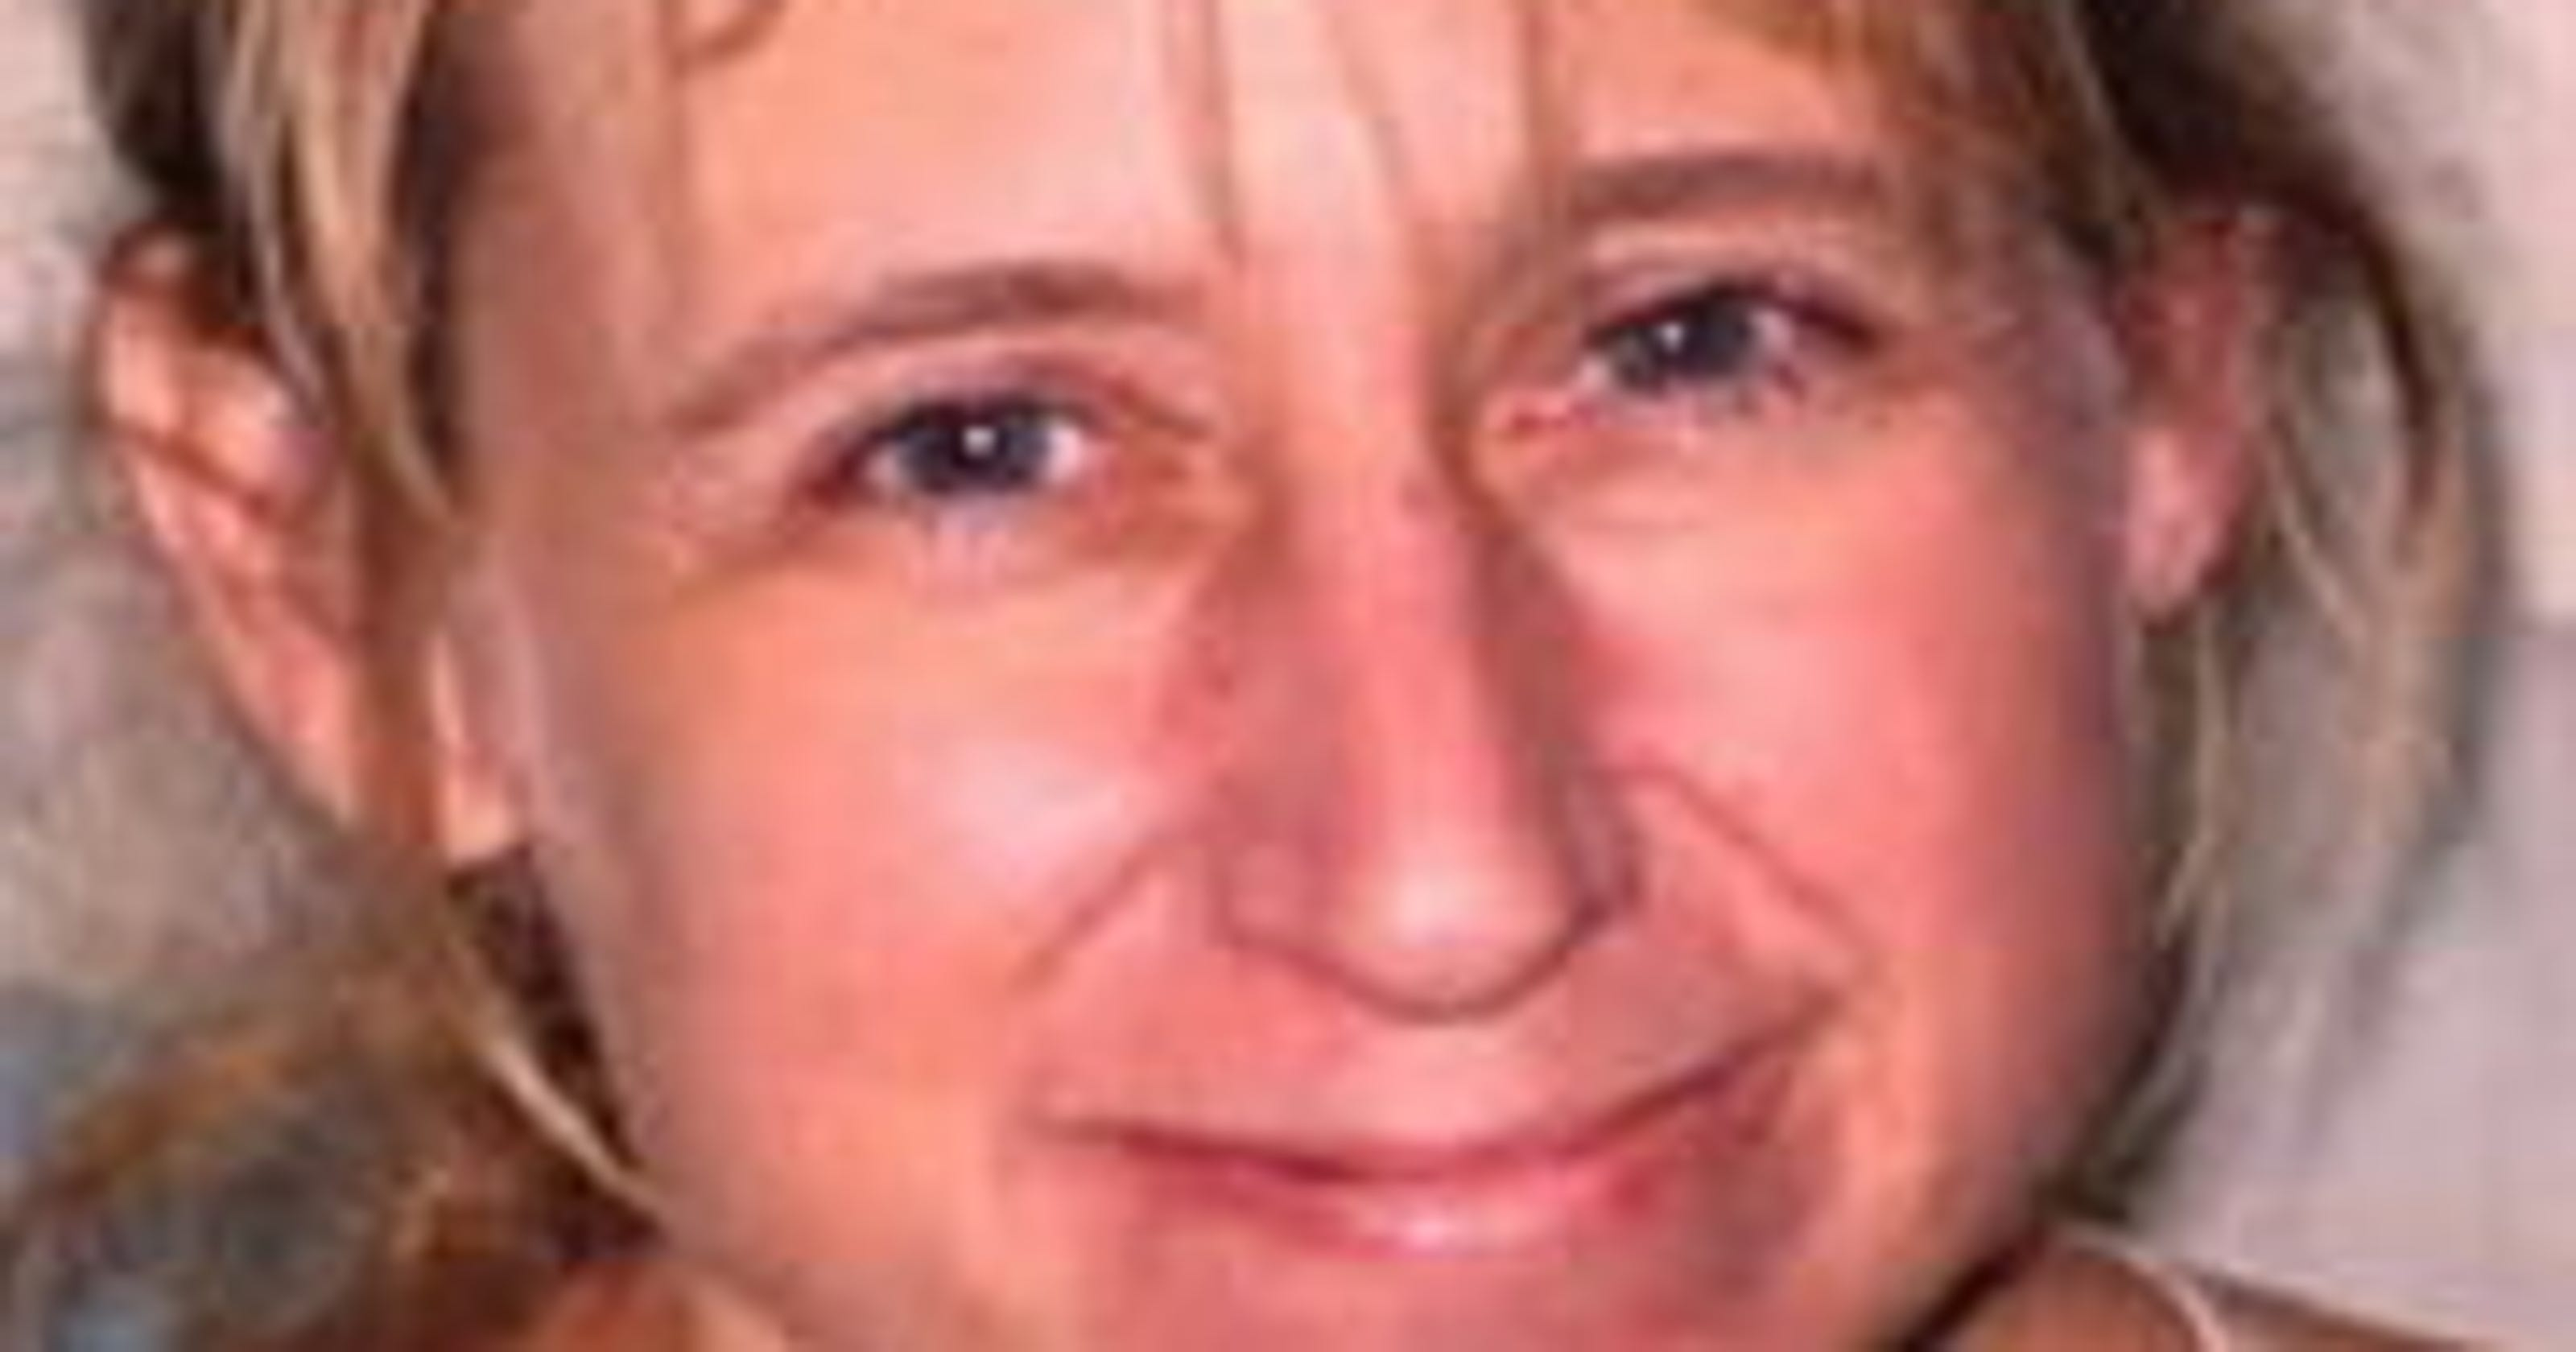 Oregon woman is second body in Wisconsin suitcases